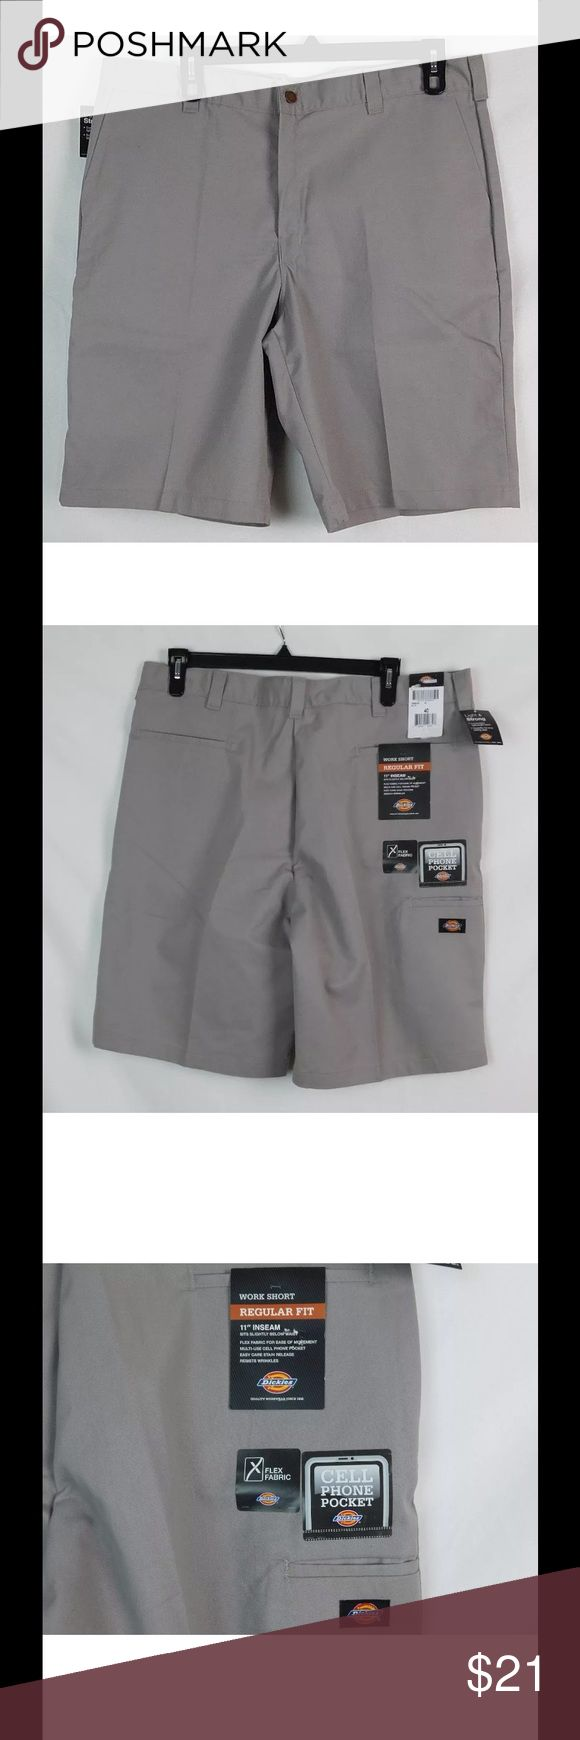 """Dickies Men's Work Shorts Size 30 Regular fit Dickies Men's Work Shorts Size 30 Regular fit color Gray size 30 x 11"""" inseam  actual waist measures 32"""" rise 10""""  35% cotton 65% polyester new with tags Dickies Shorts Cargo"""